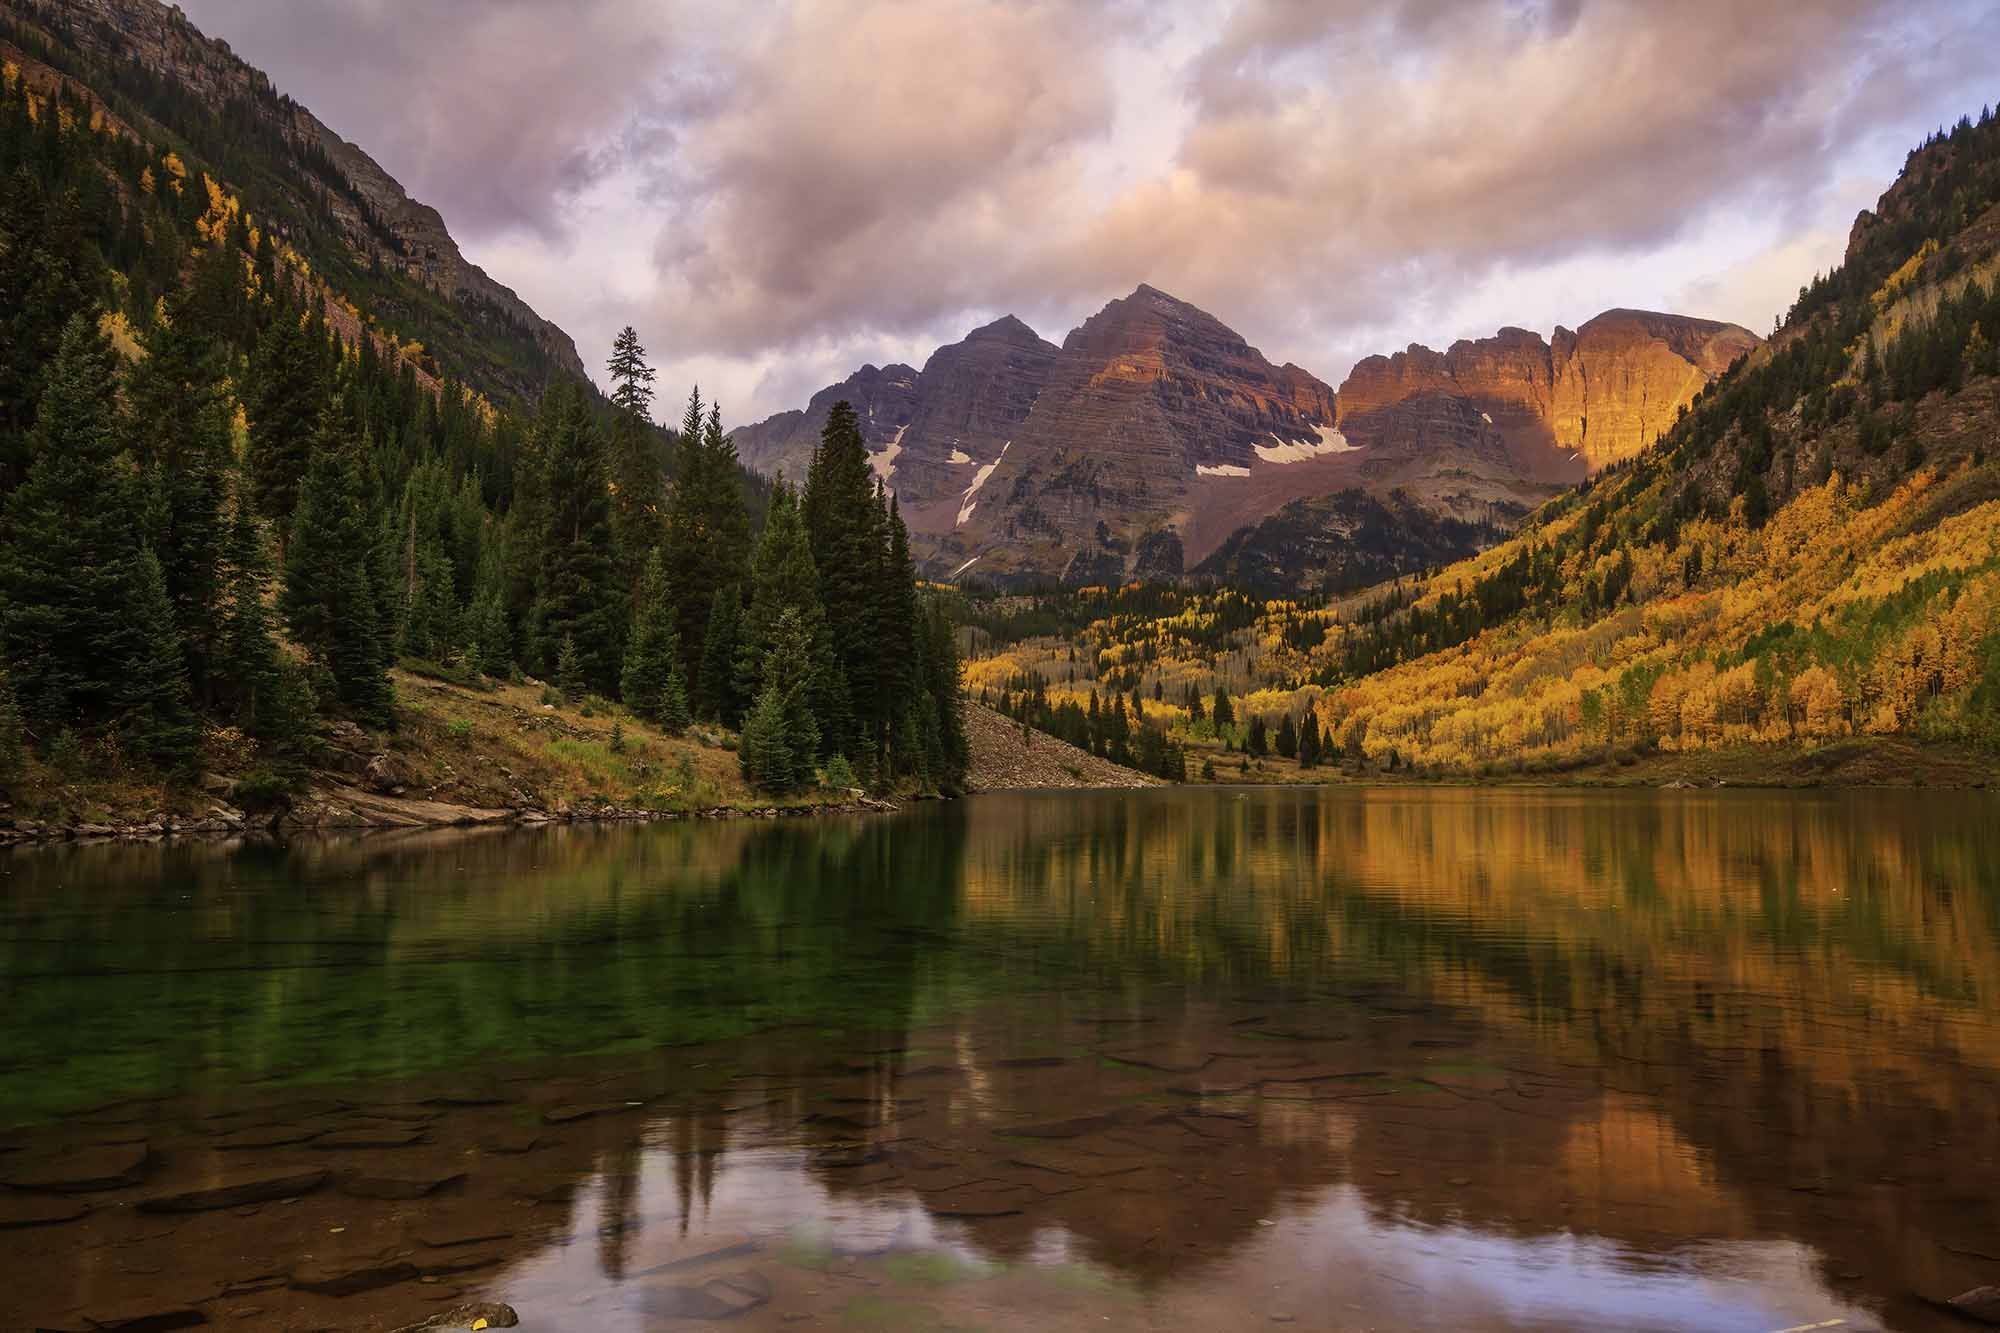 Gold and scarlet hues adorn the sides of rugged mountains and are reflected on a lake.